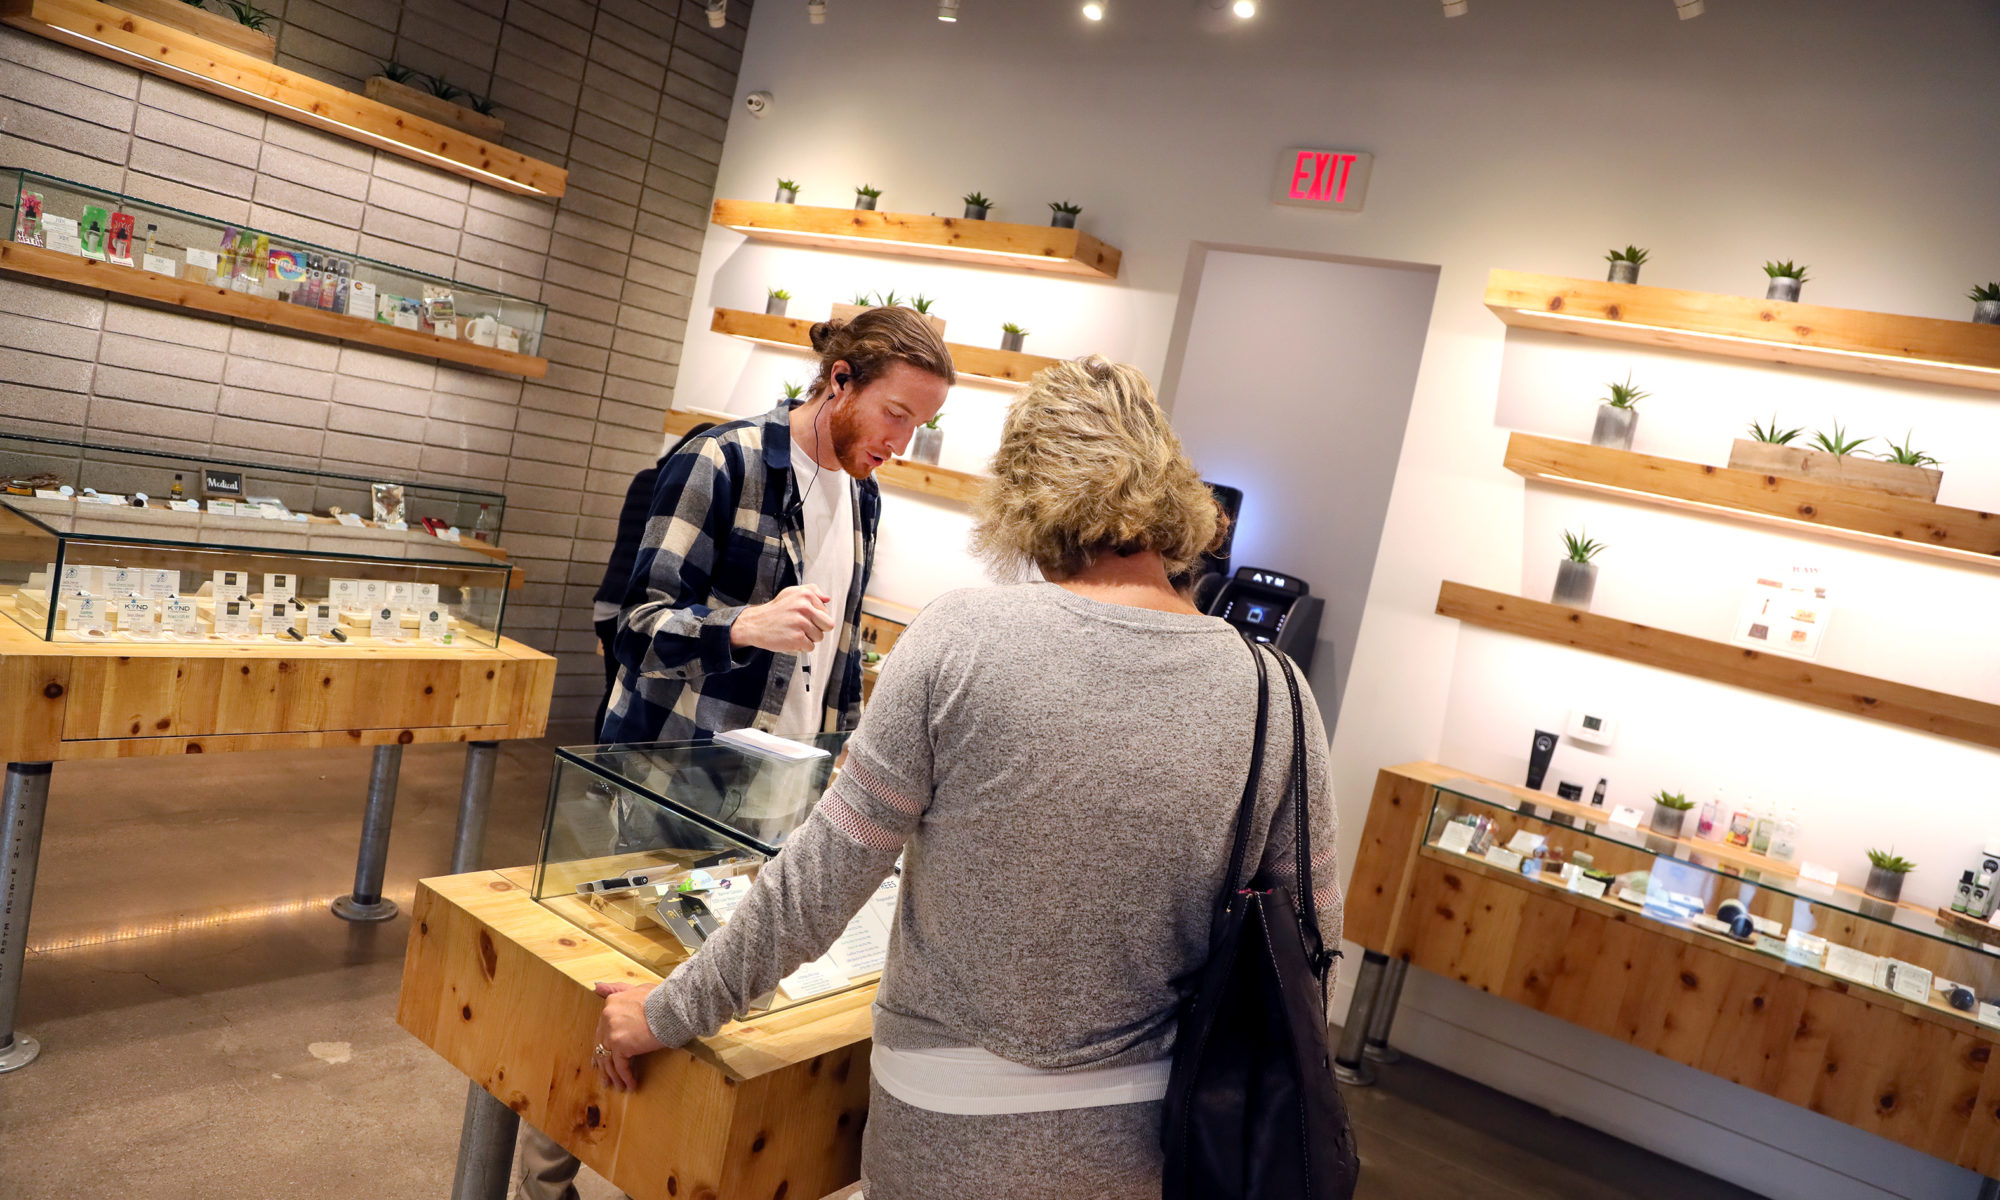 Patient advisor Regan Fueget explains marijuana products on display to a customer at the+source dispensary in Henderson